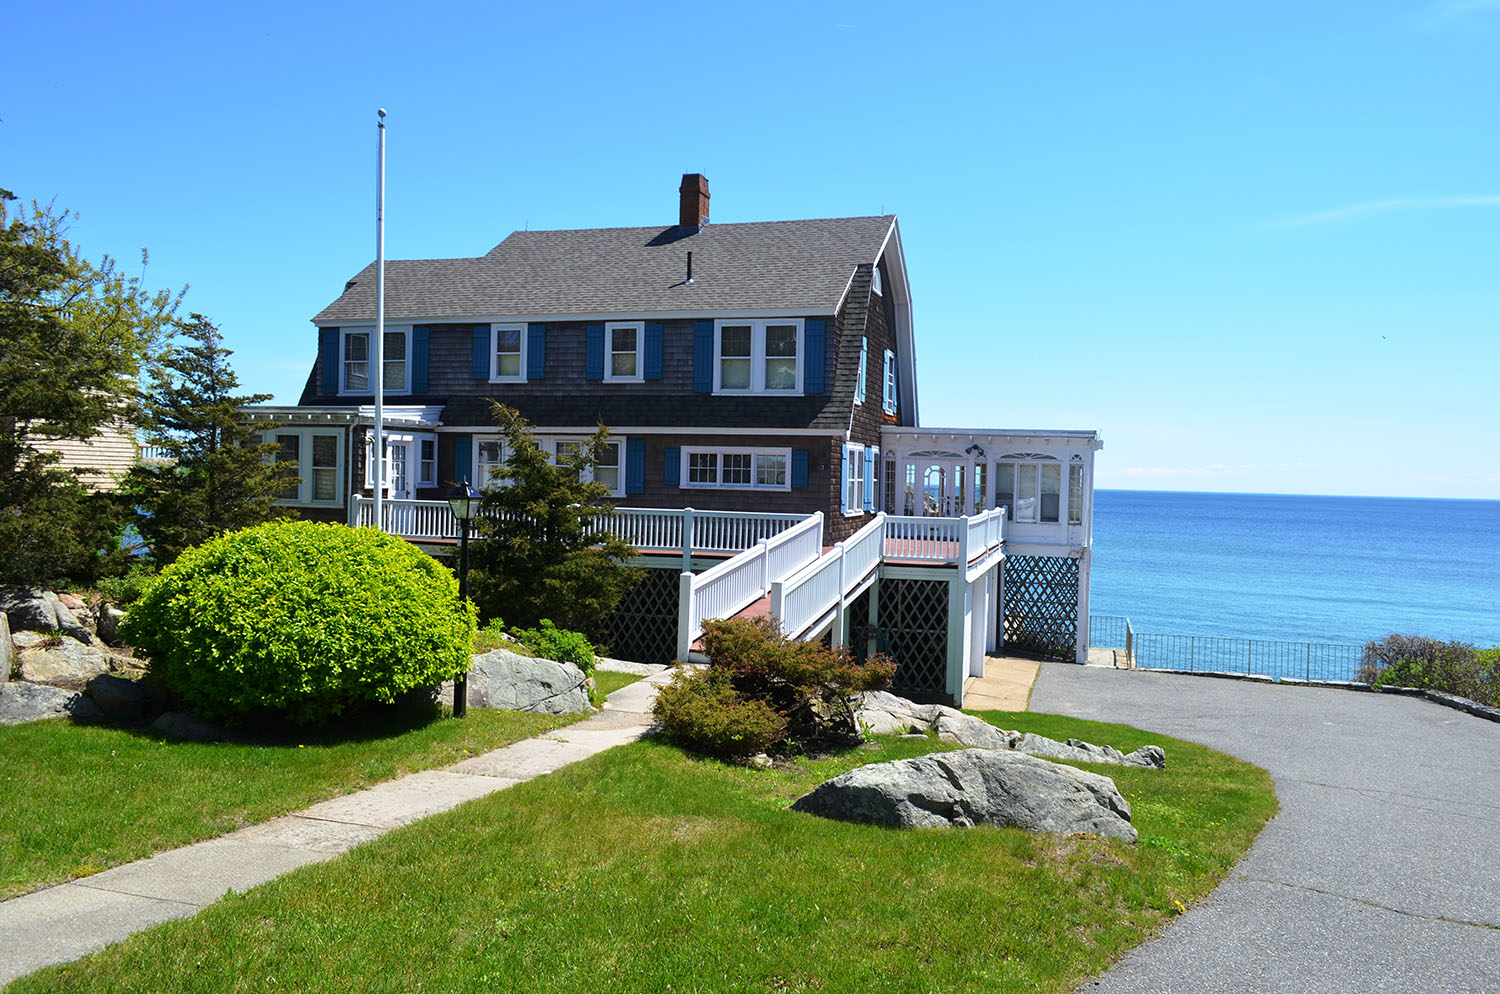 Waterfront Rentals in Massaschusetts